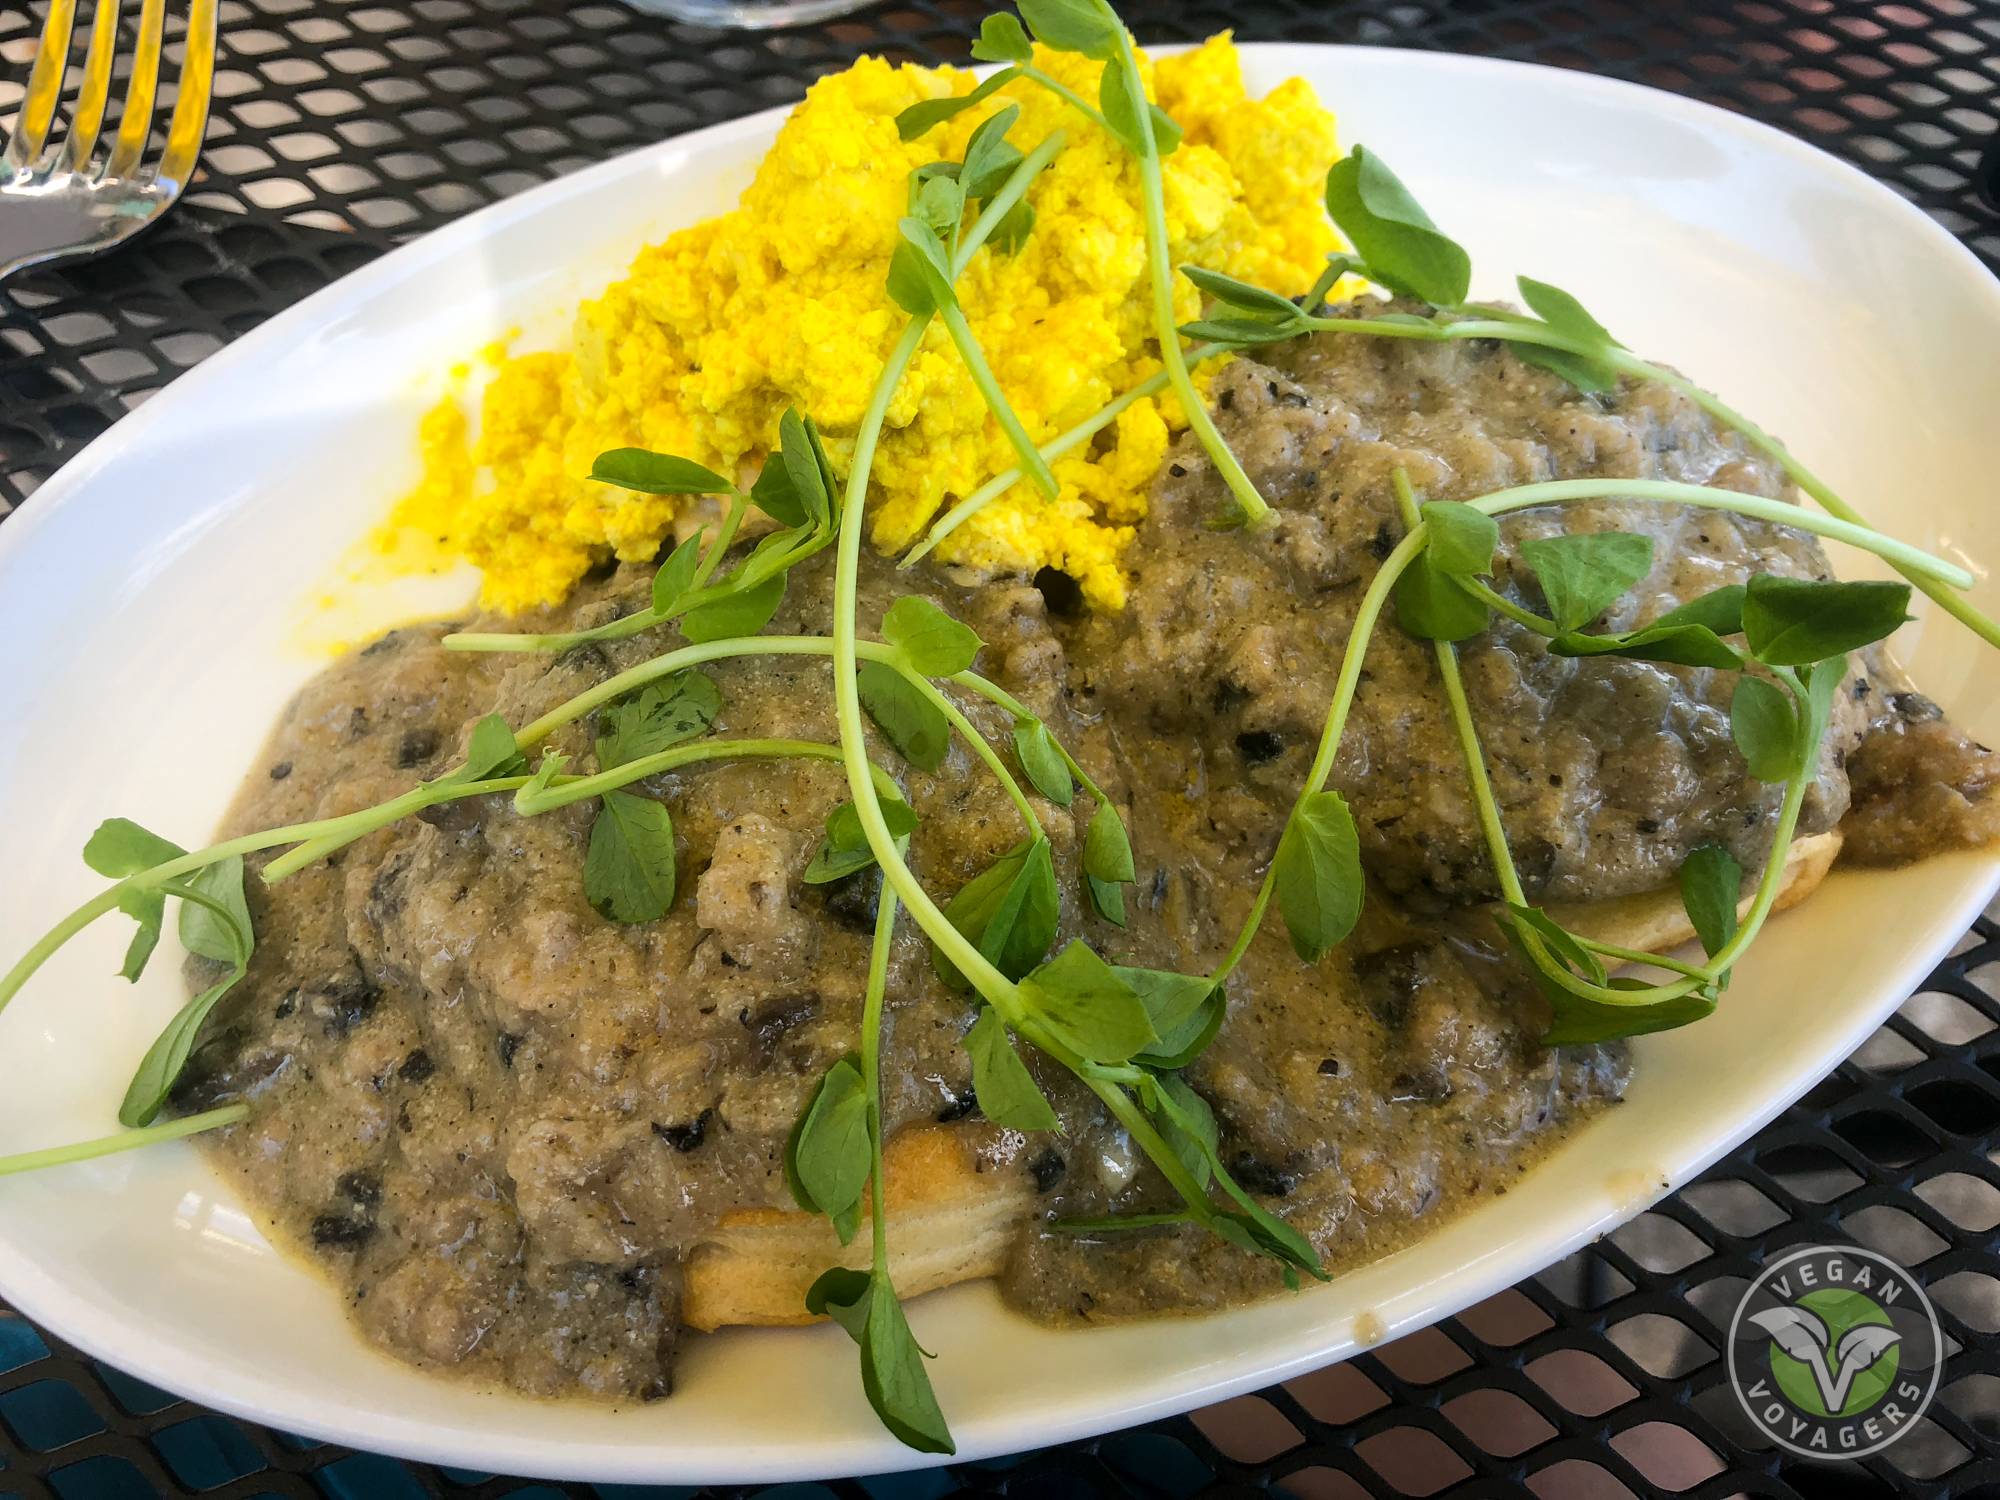 Vegan biscuits and gravy | Cider Press Cafe, St. Petersburg, FL